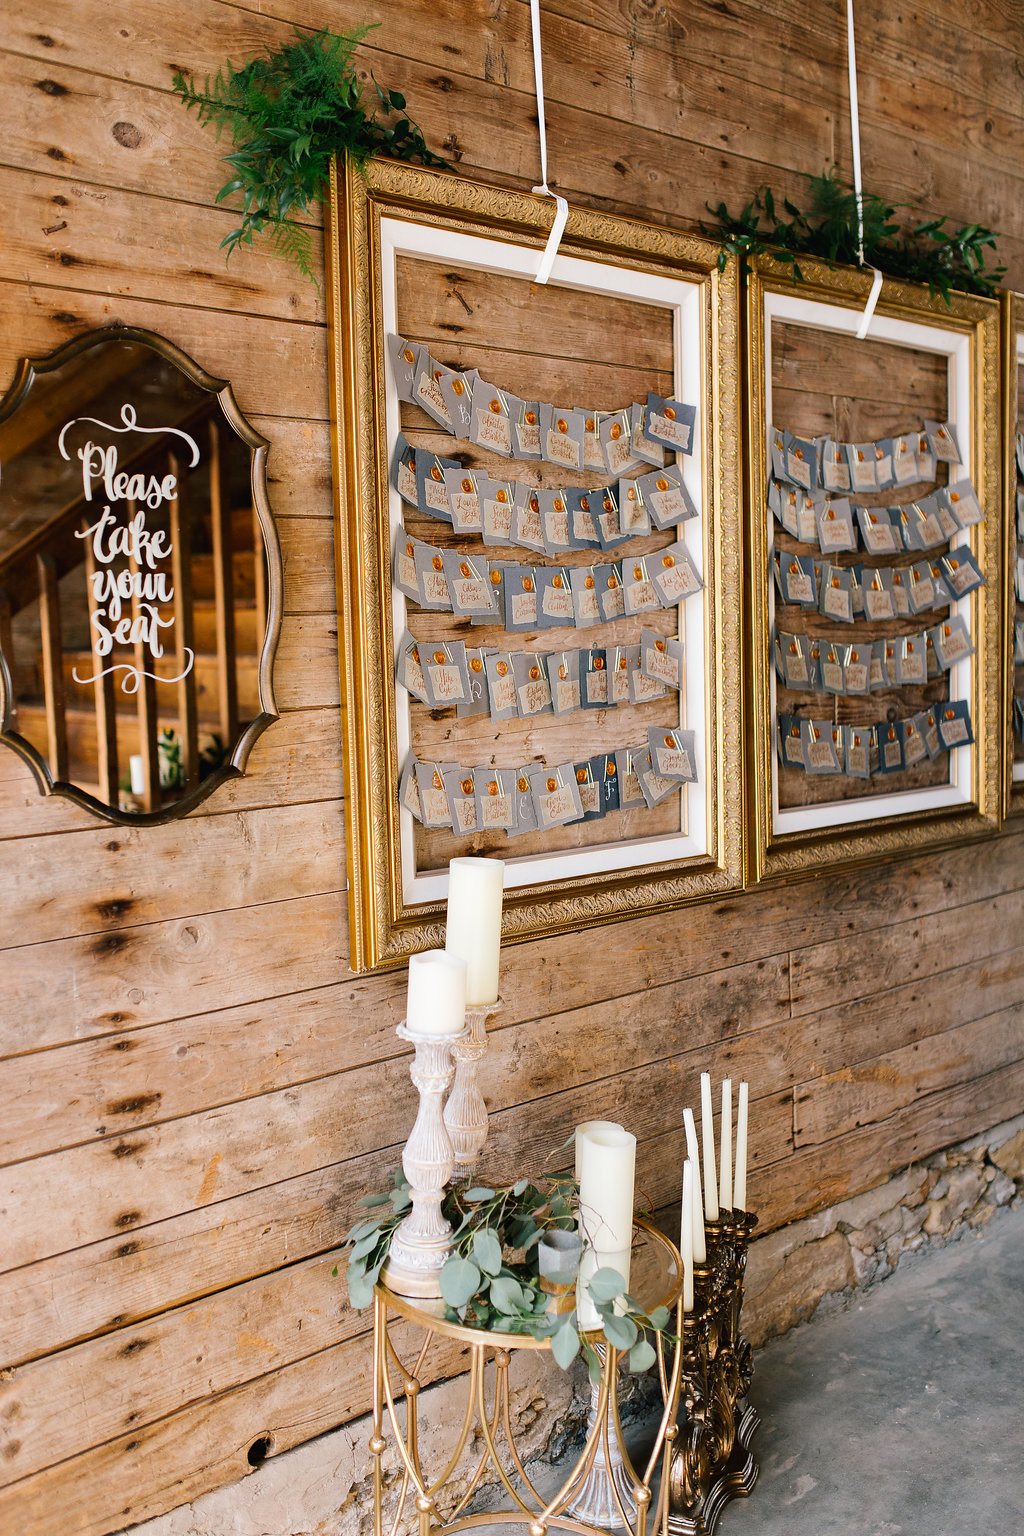 Jade and Seth Bloom Lake Barn wedding | Allison Hopperstad Photography | A Vintage Touch Weddings planning nad design | Day of Coordinating by Sixpence Events | copper and grey place card with wax letter stamp in gold frame with please take a seat mirror sign